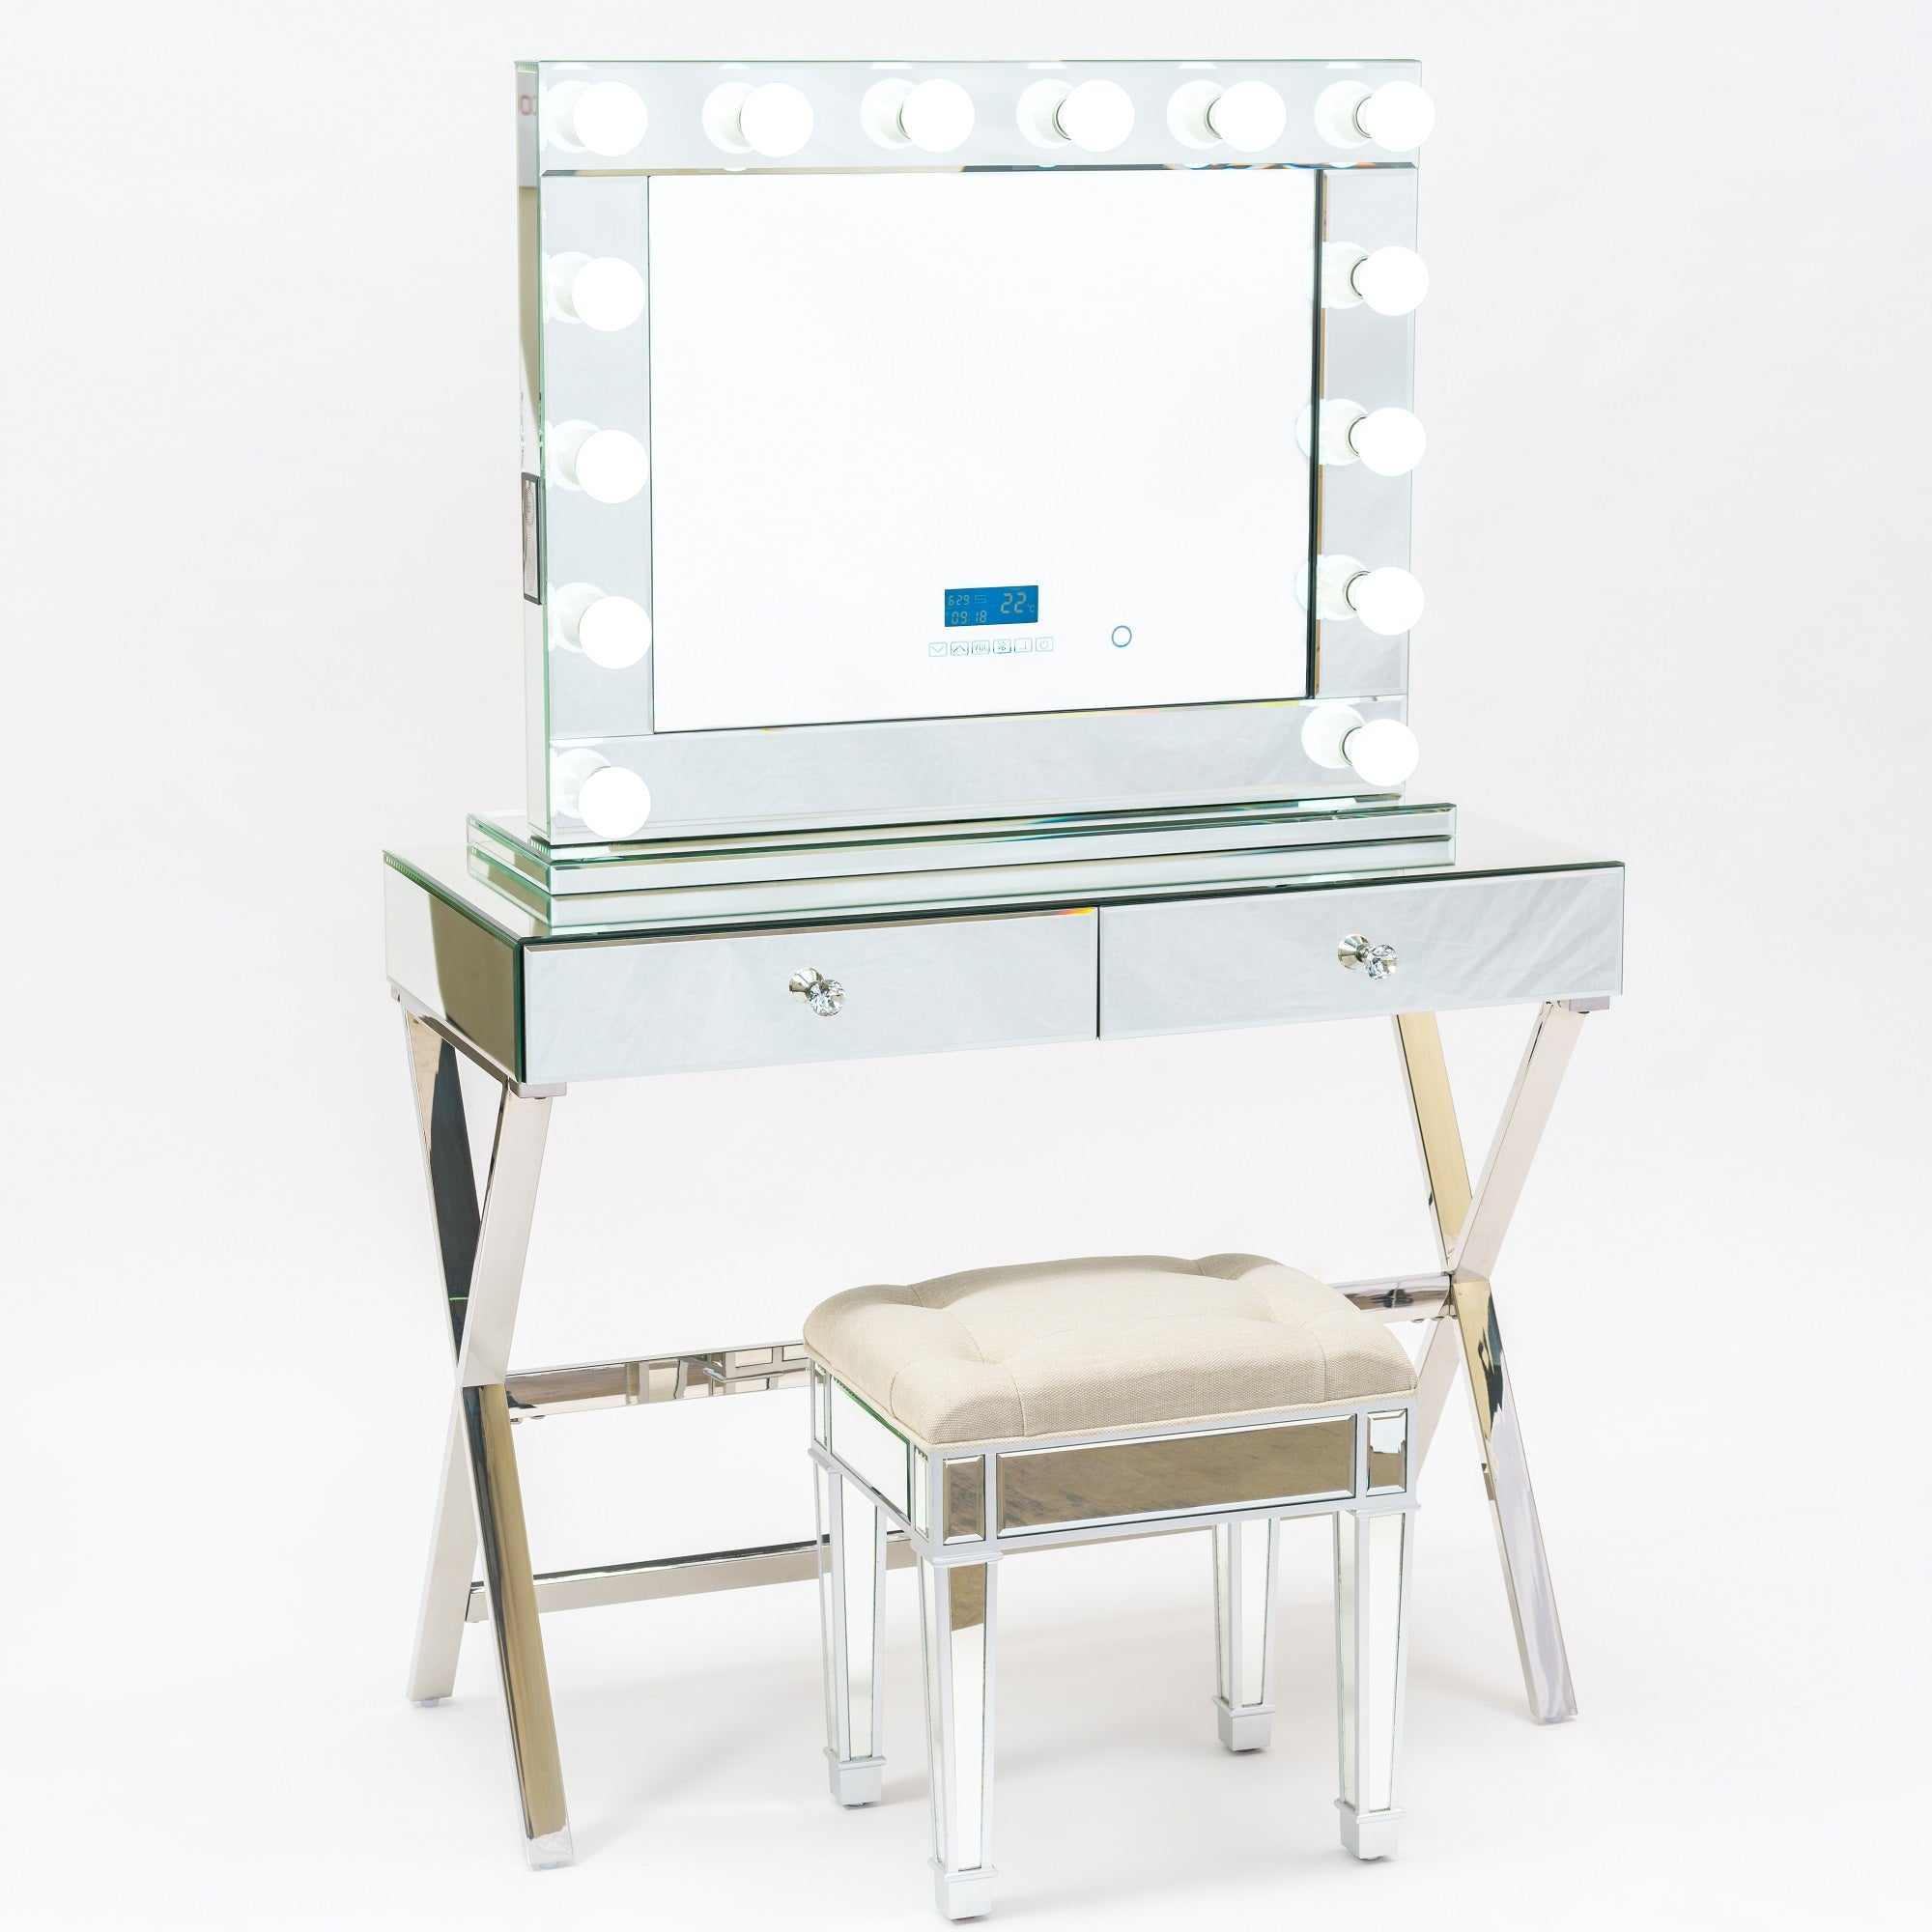 Vanity Station 2 Pieces - Full Mirror Finish Vanity Table with 2 drawers and Model 3 Bluetooth  Mirror-STOOL NOT INCLUDED